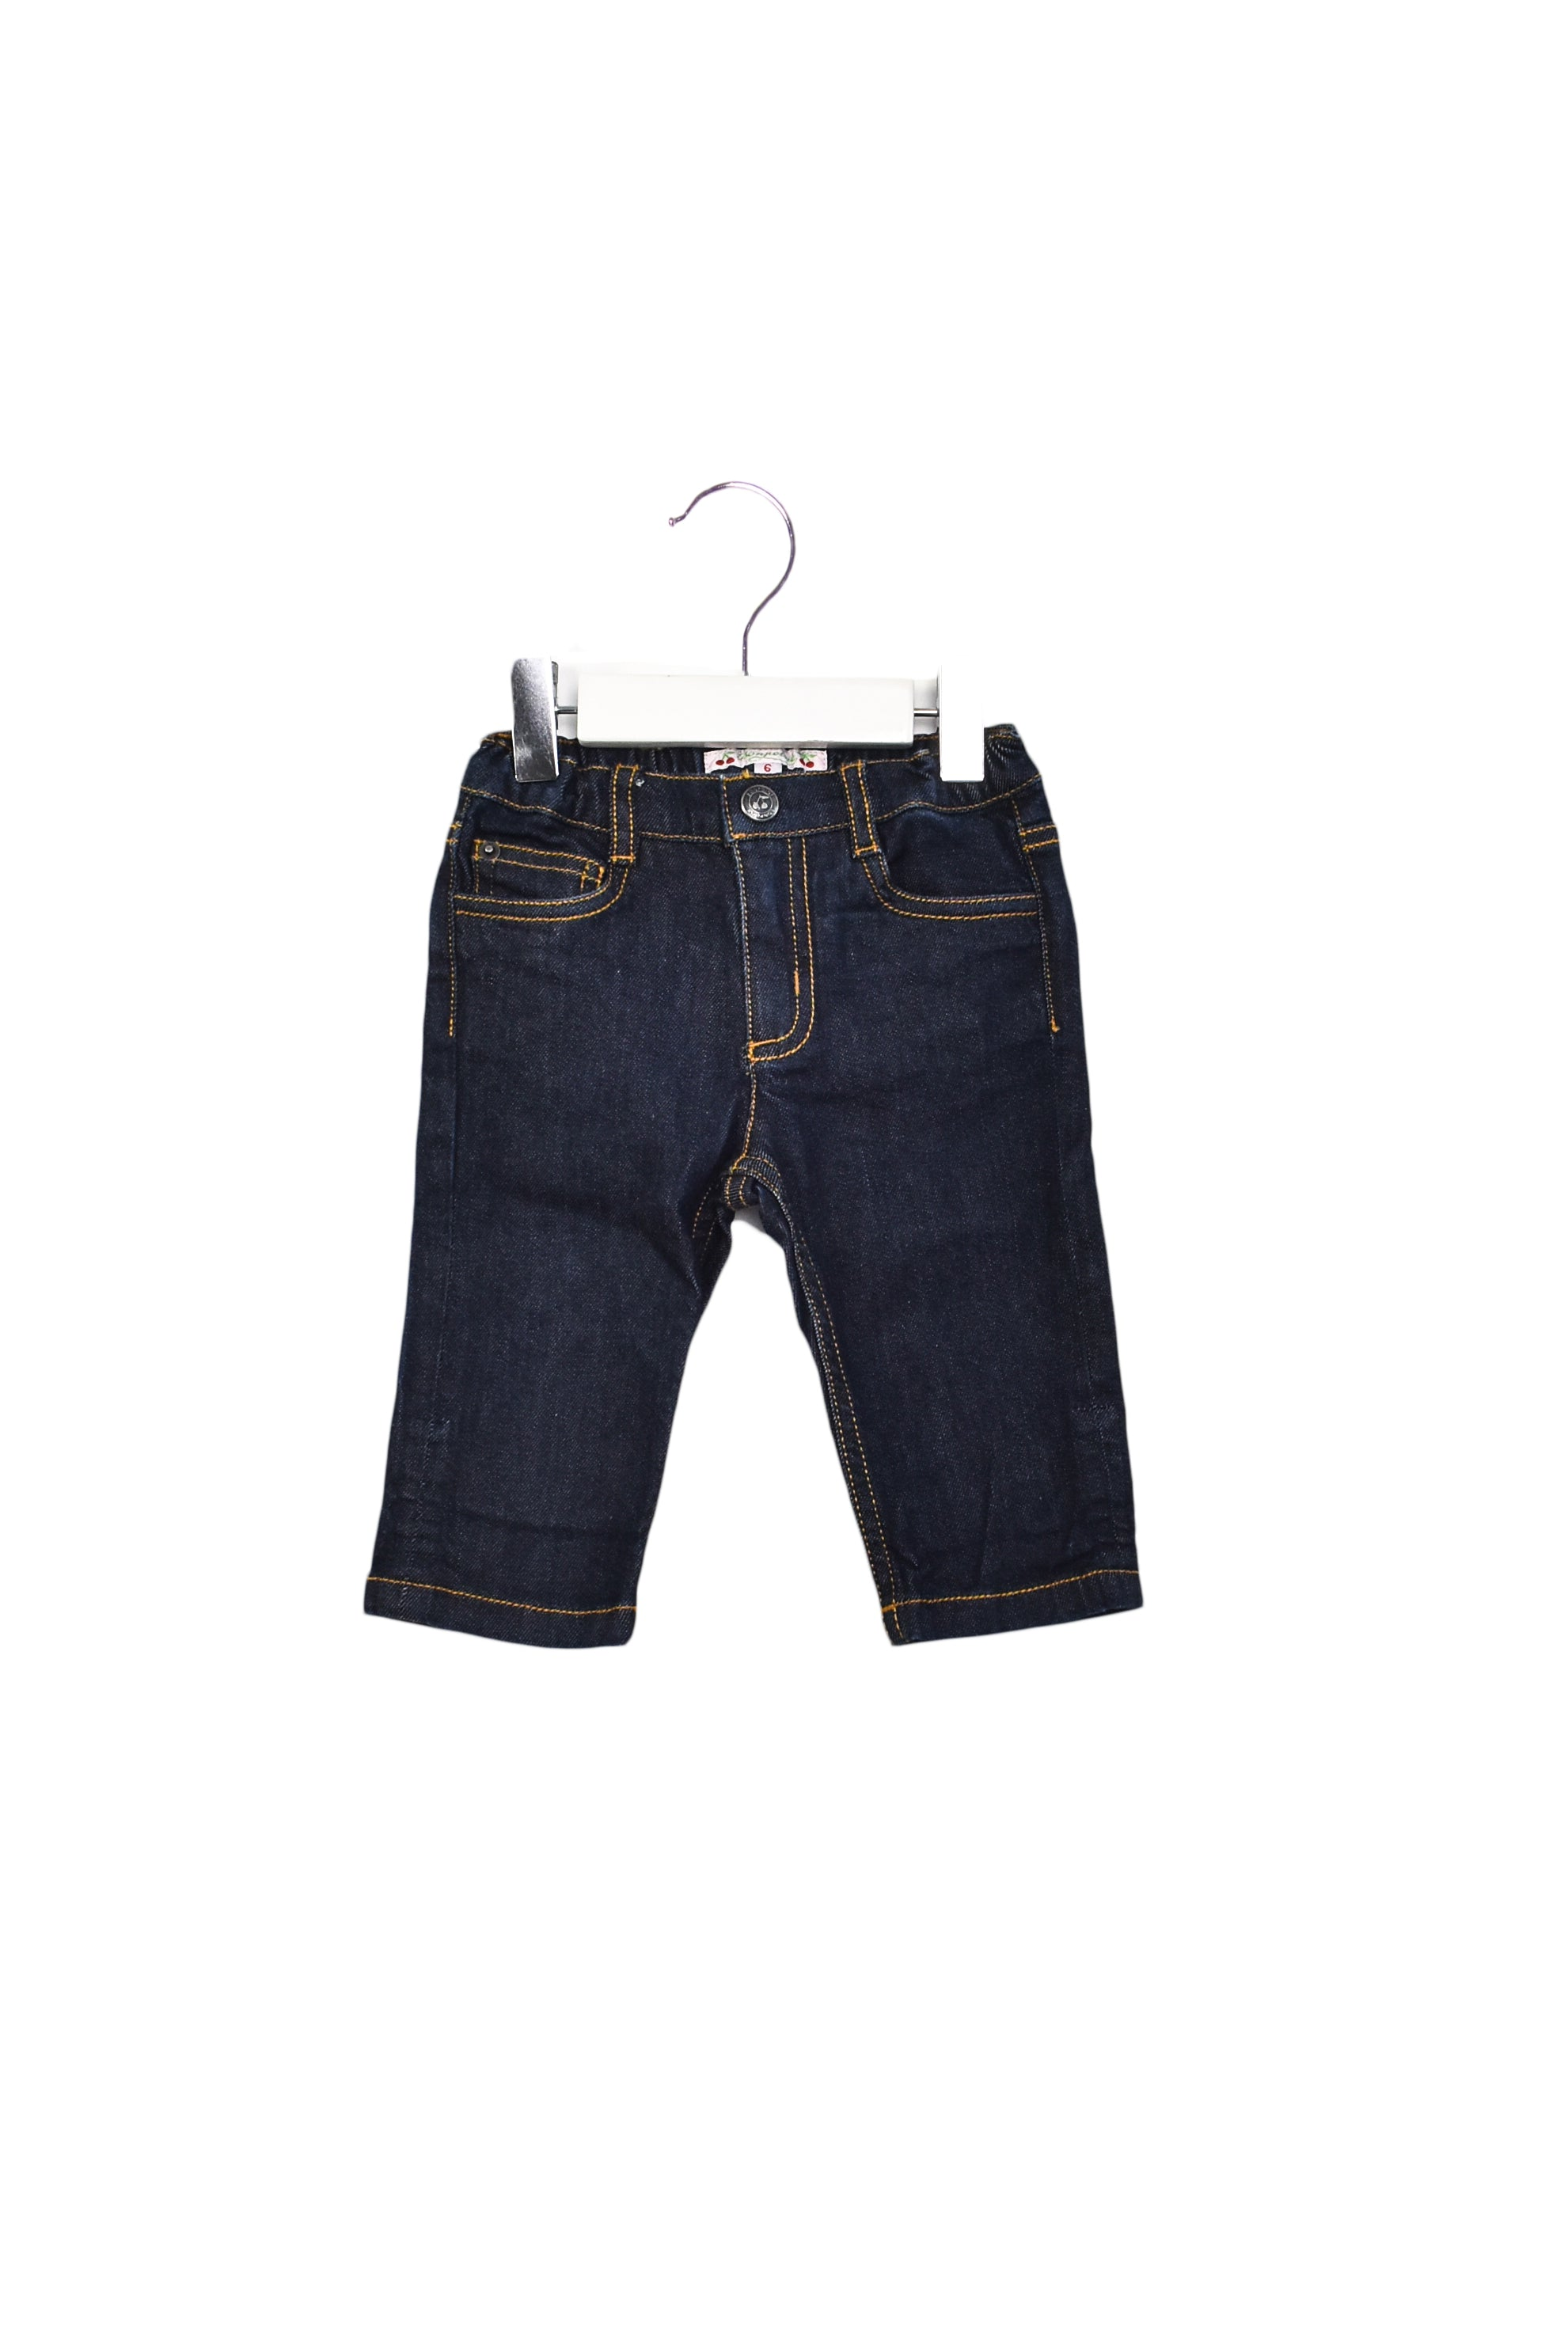 10013489 Bonpoint Baby~Jeans 6M at Retykle